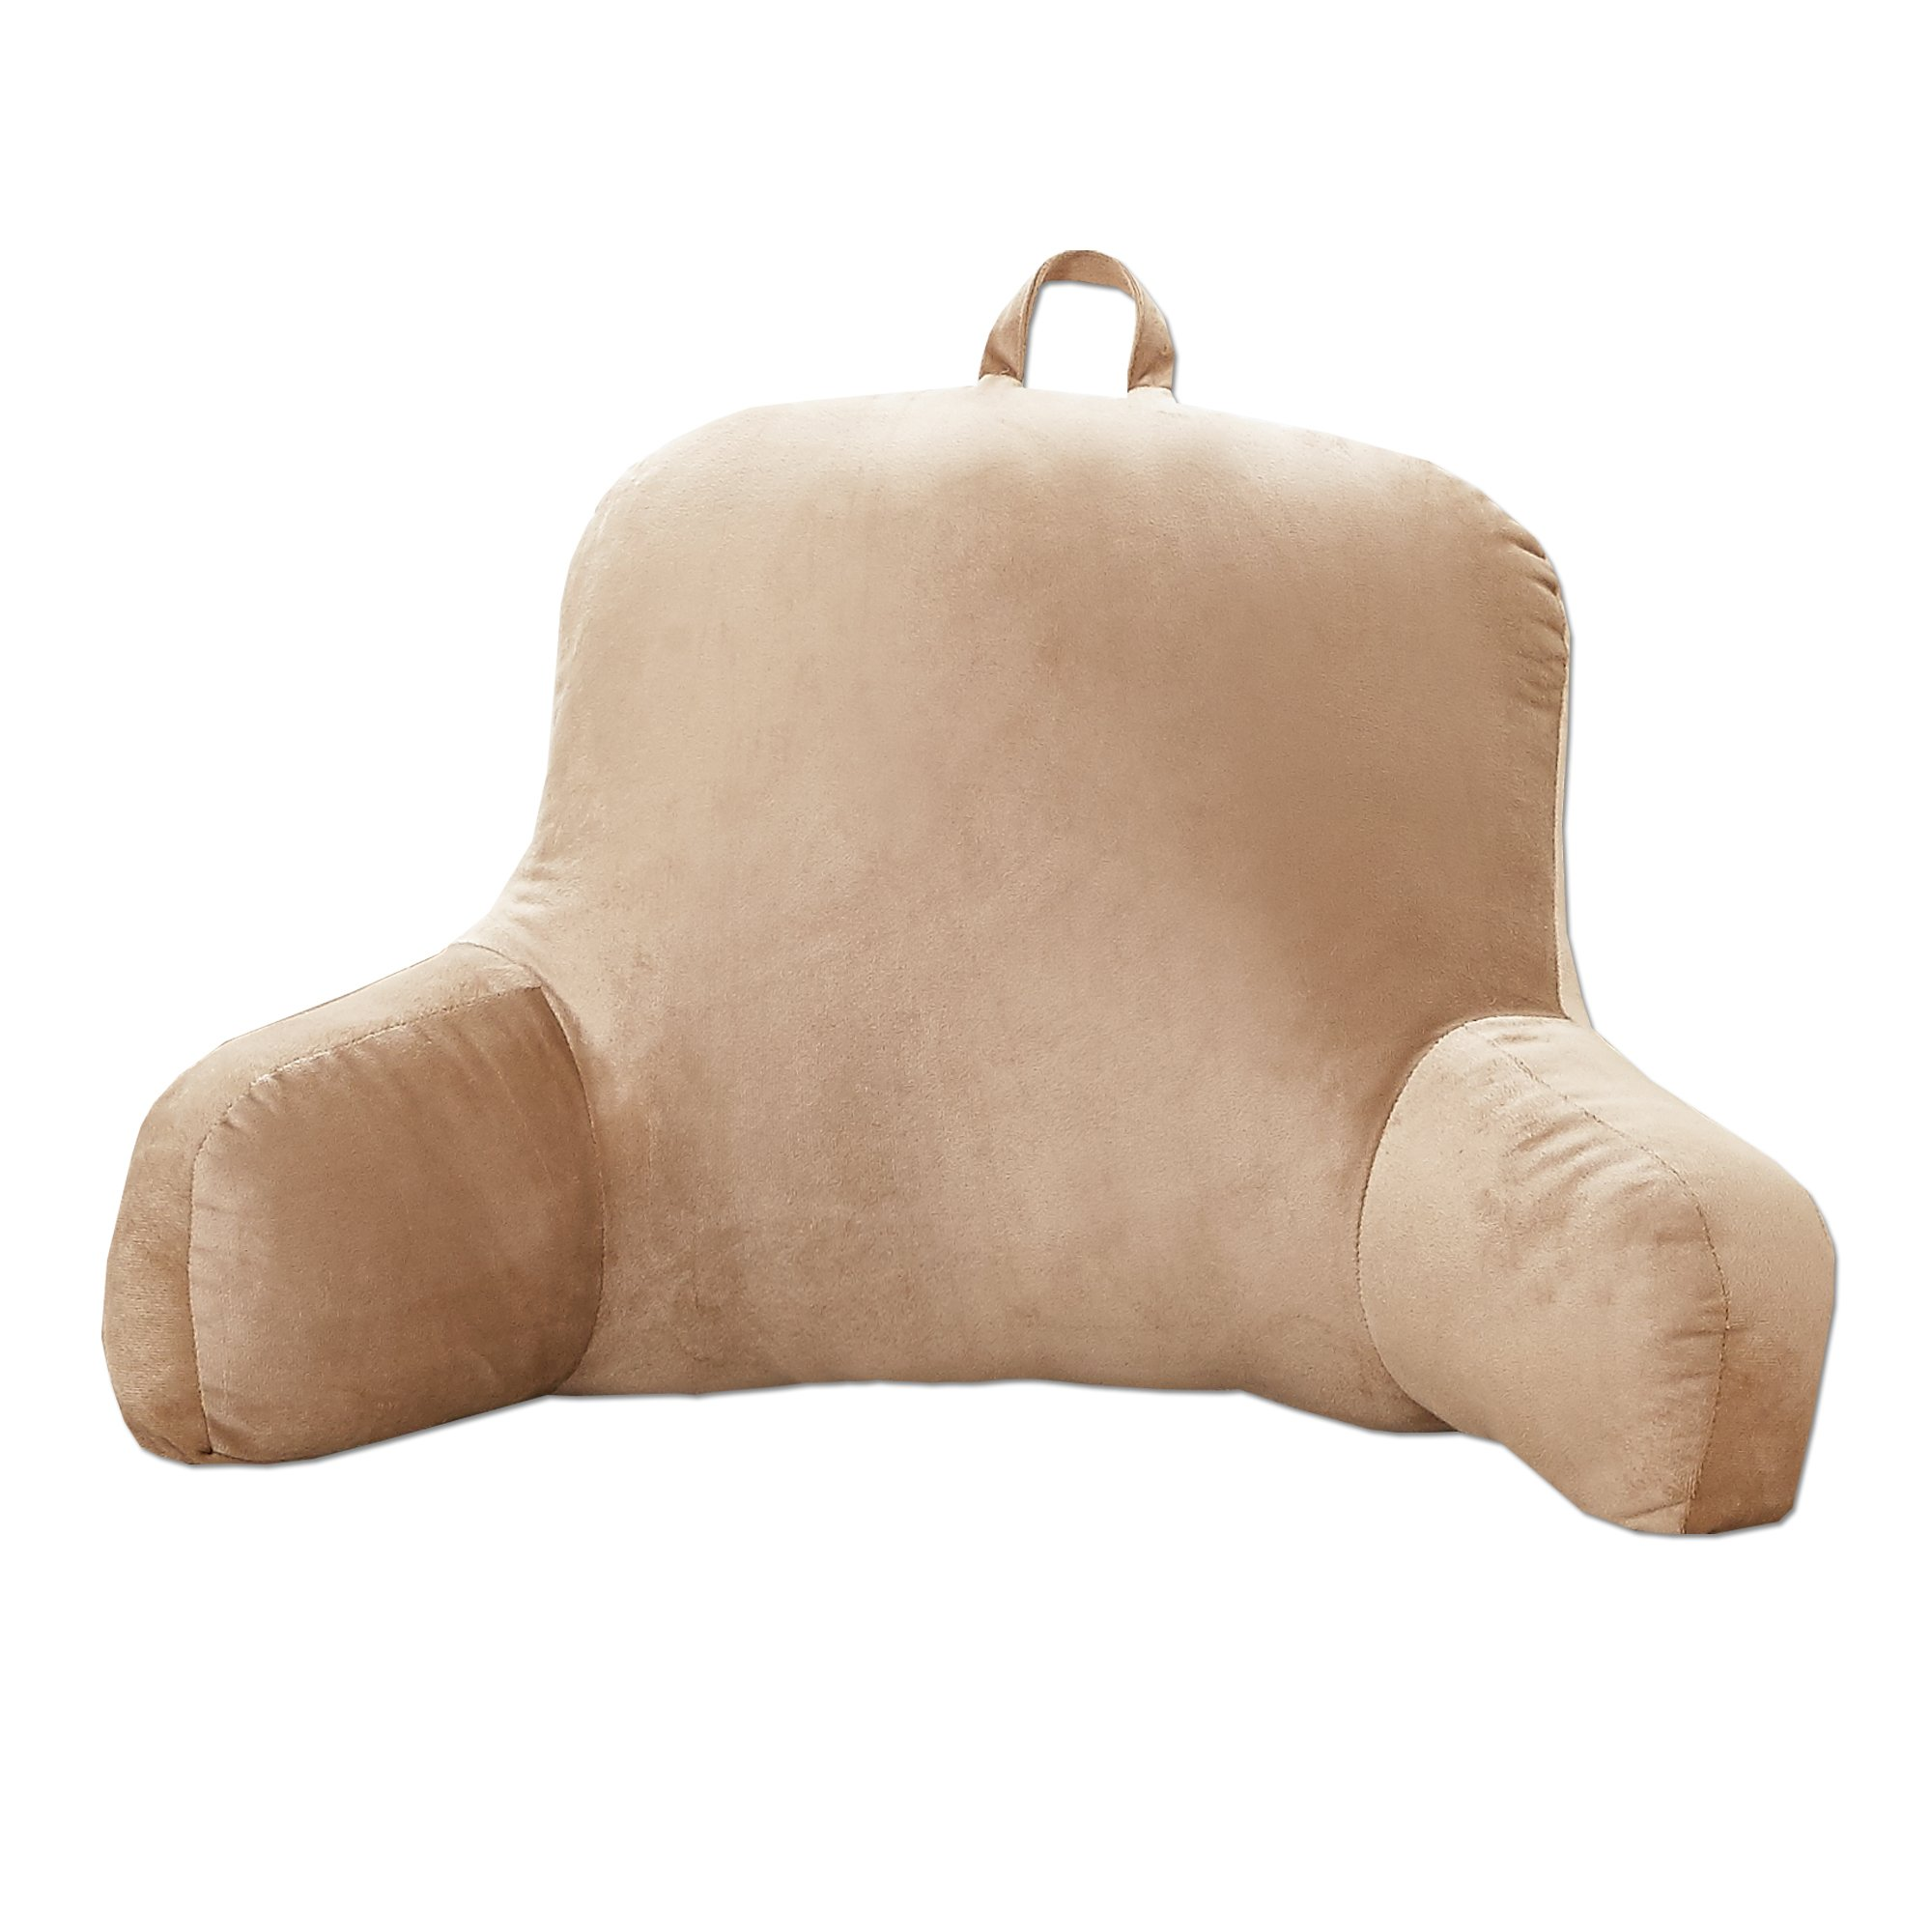 Sweet Home Collection Ultra Plush Brushed Microfiber Bed Rest pillow Lounger, Taupe